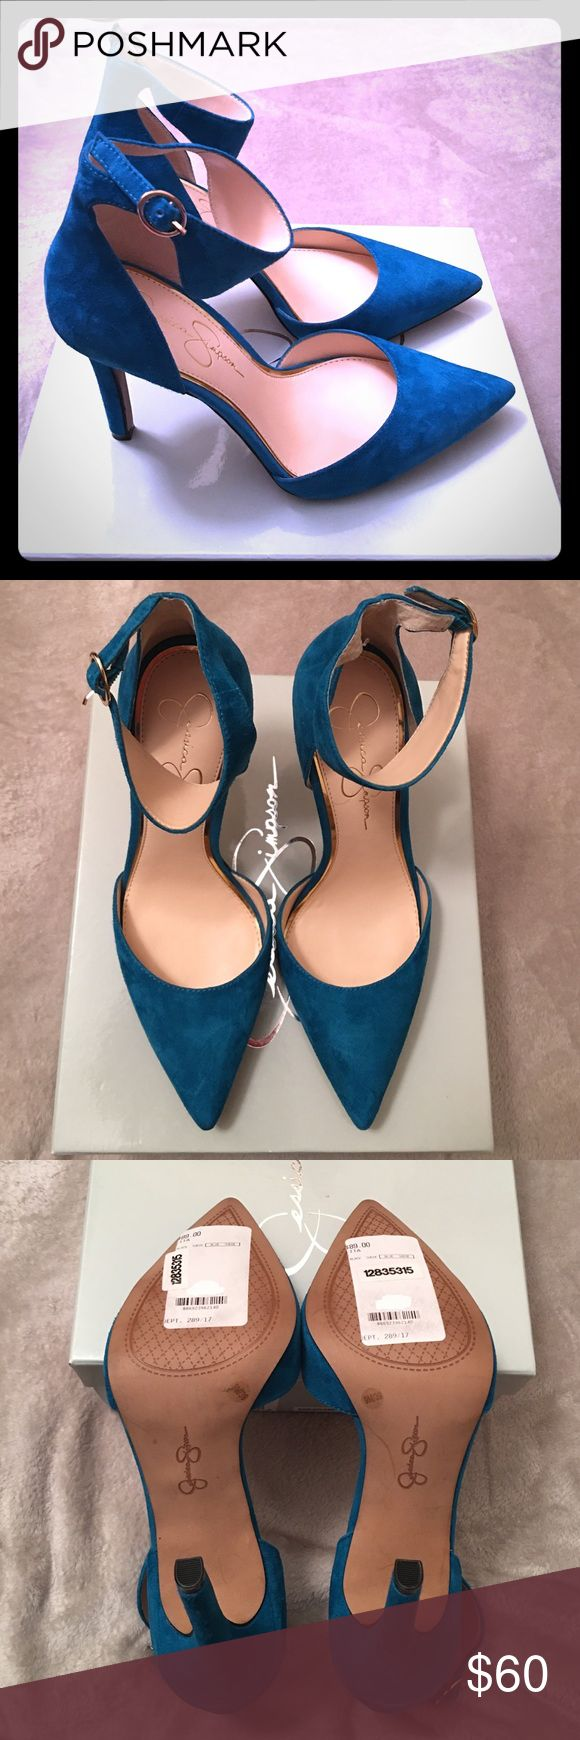 Selling this NWB Blue Suede Stilleto shoes Jessica Simpson sz 9 on Poshmark! My username is: katya000. #shopmycloset #poshmark #fashion #shopping #style #forsale #Jessica Simpson #Shoes